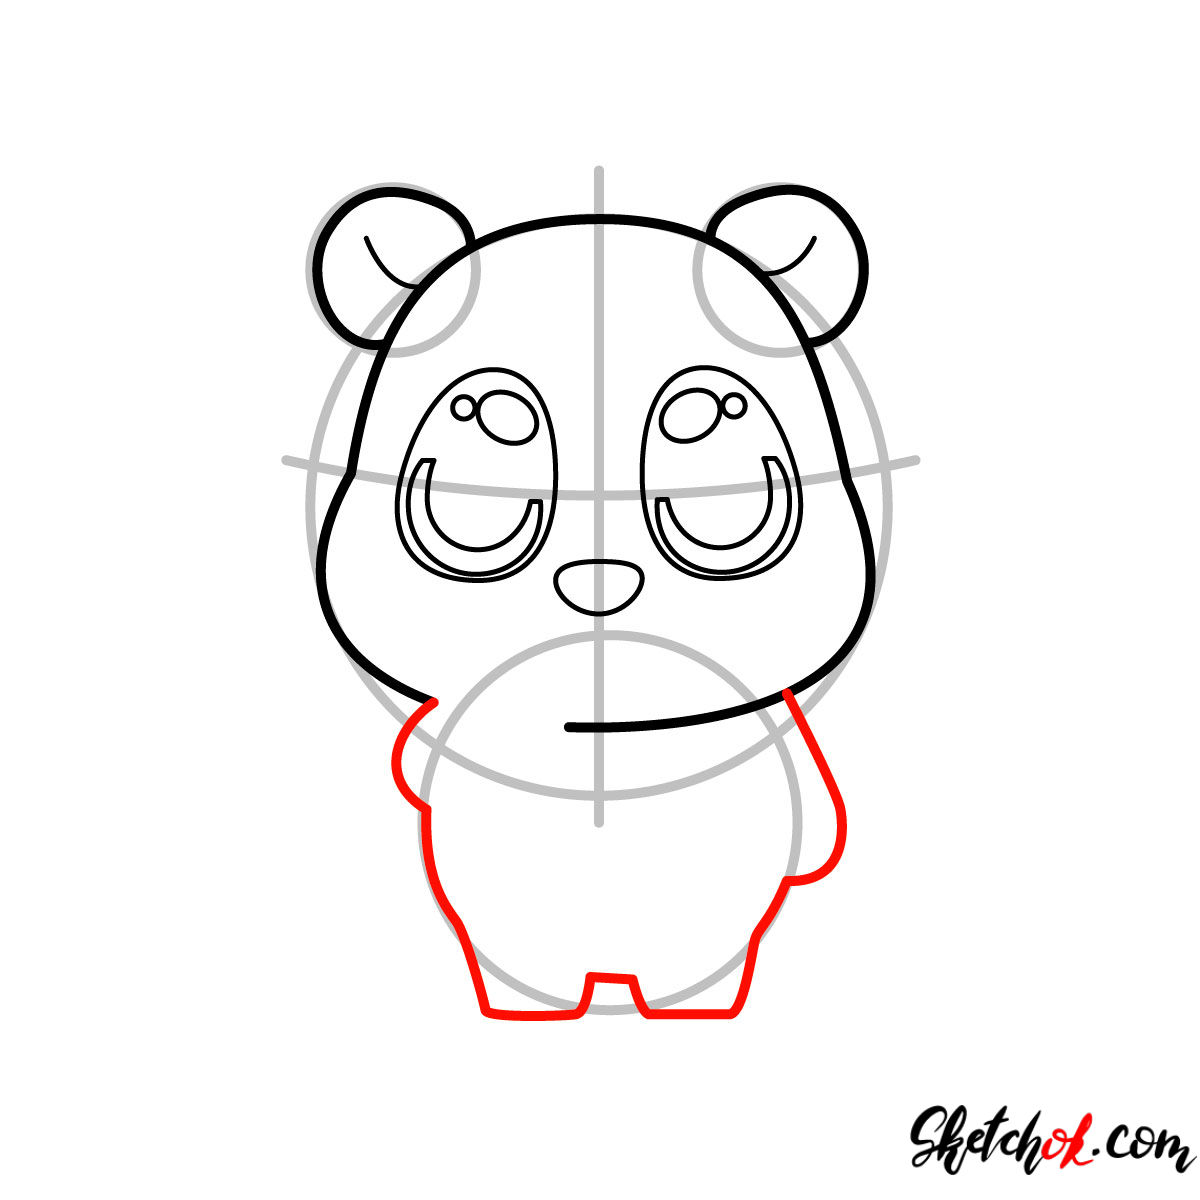 How to draw Pooh Bear chibi - step 05